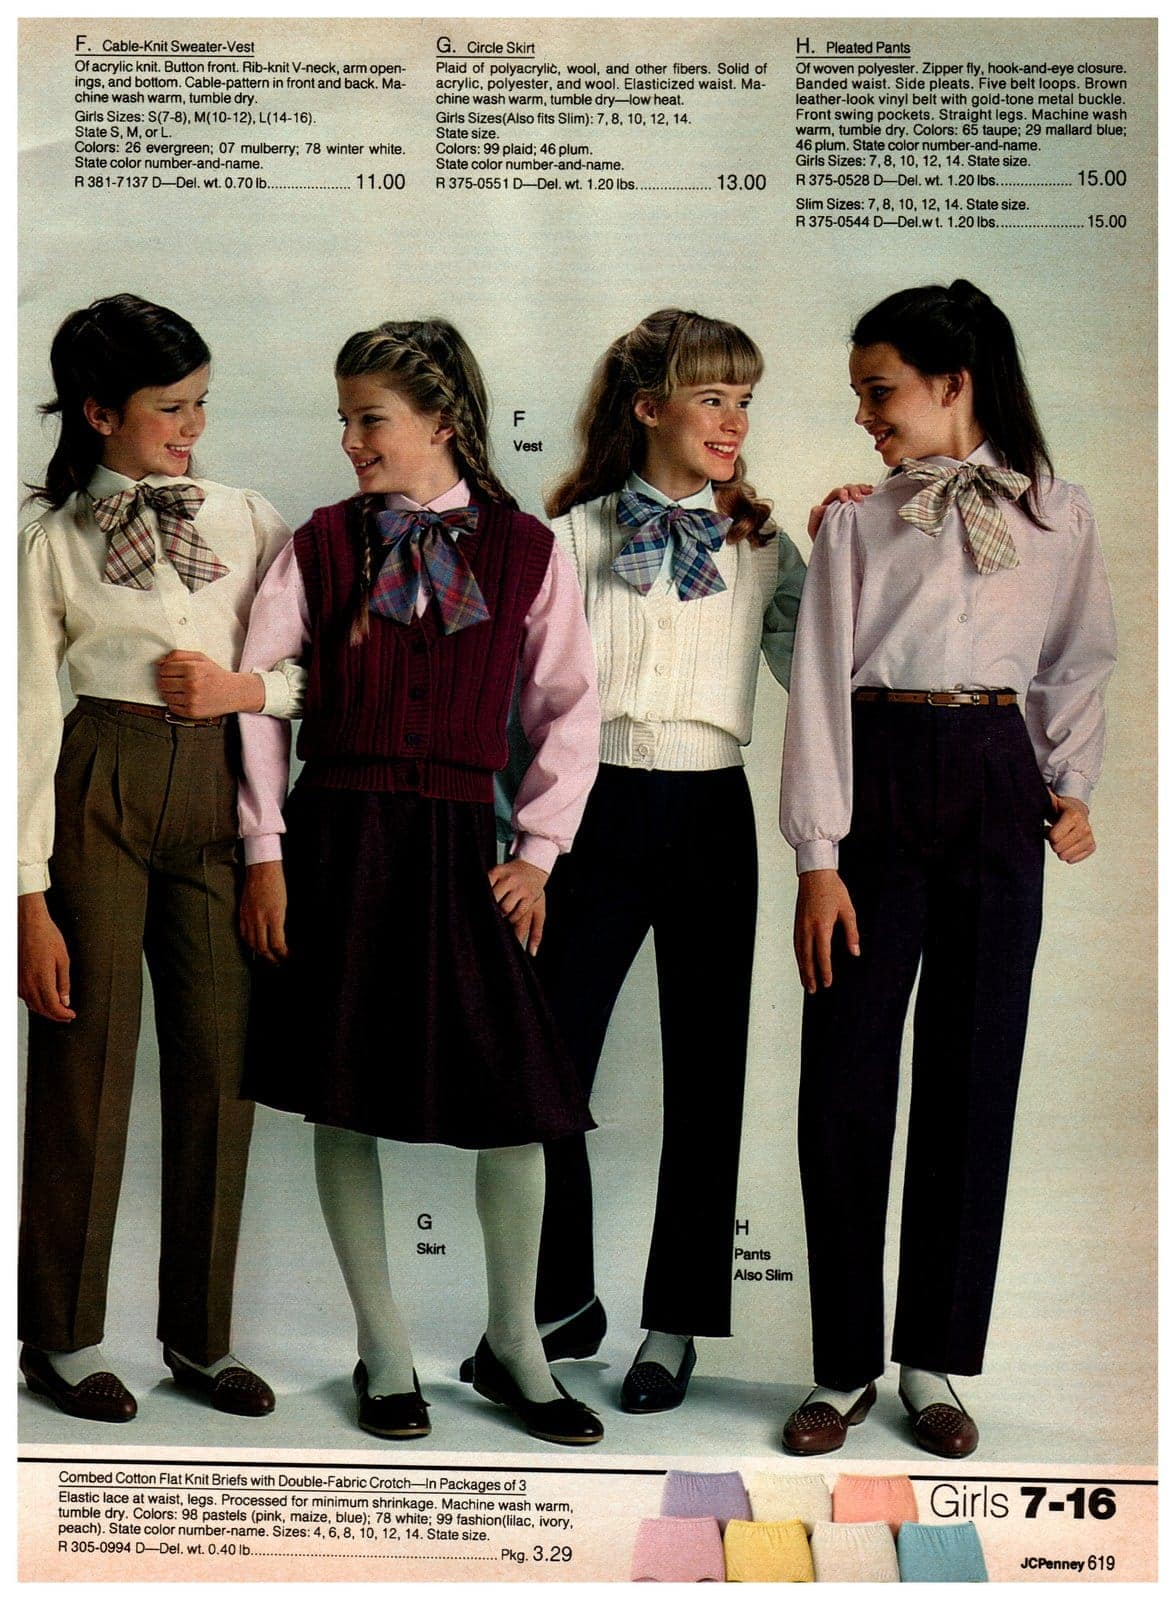 Preppy cable-knit sweater vests, circle skirts and pleated pants - worn with long-sleeved blouses and big neck bows